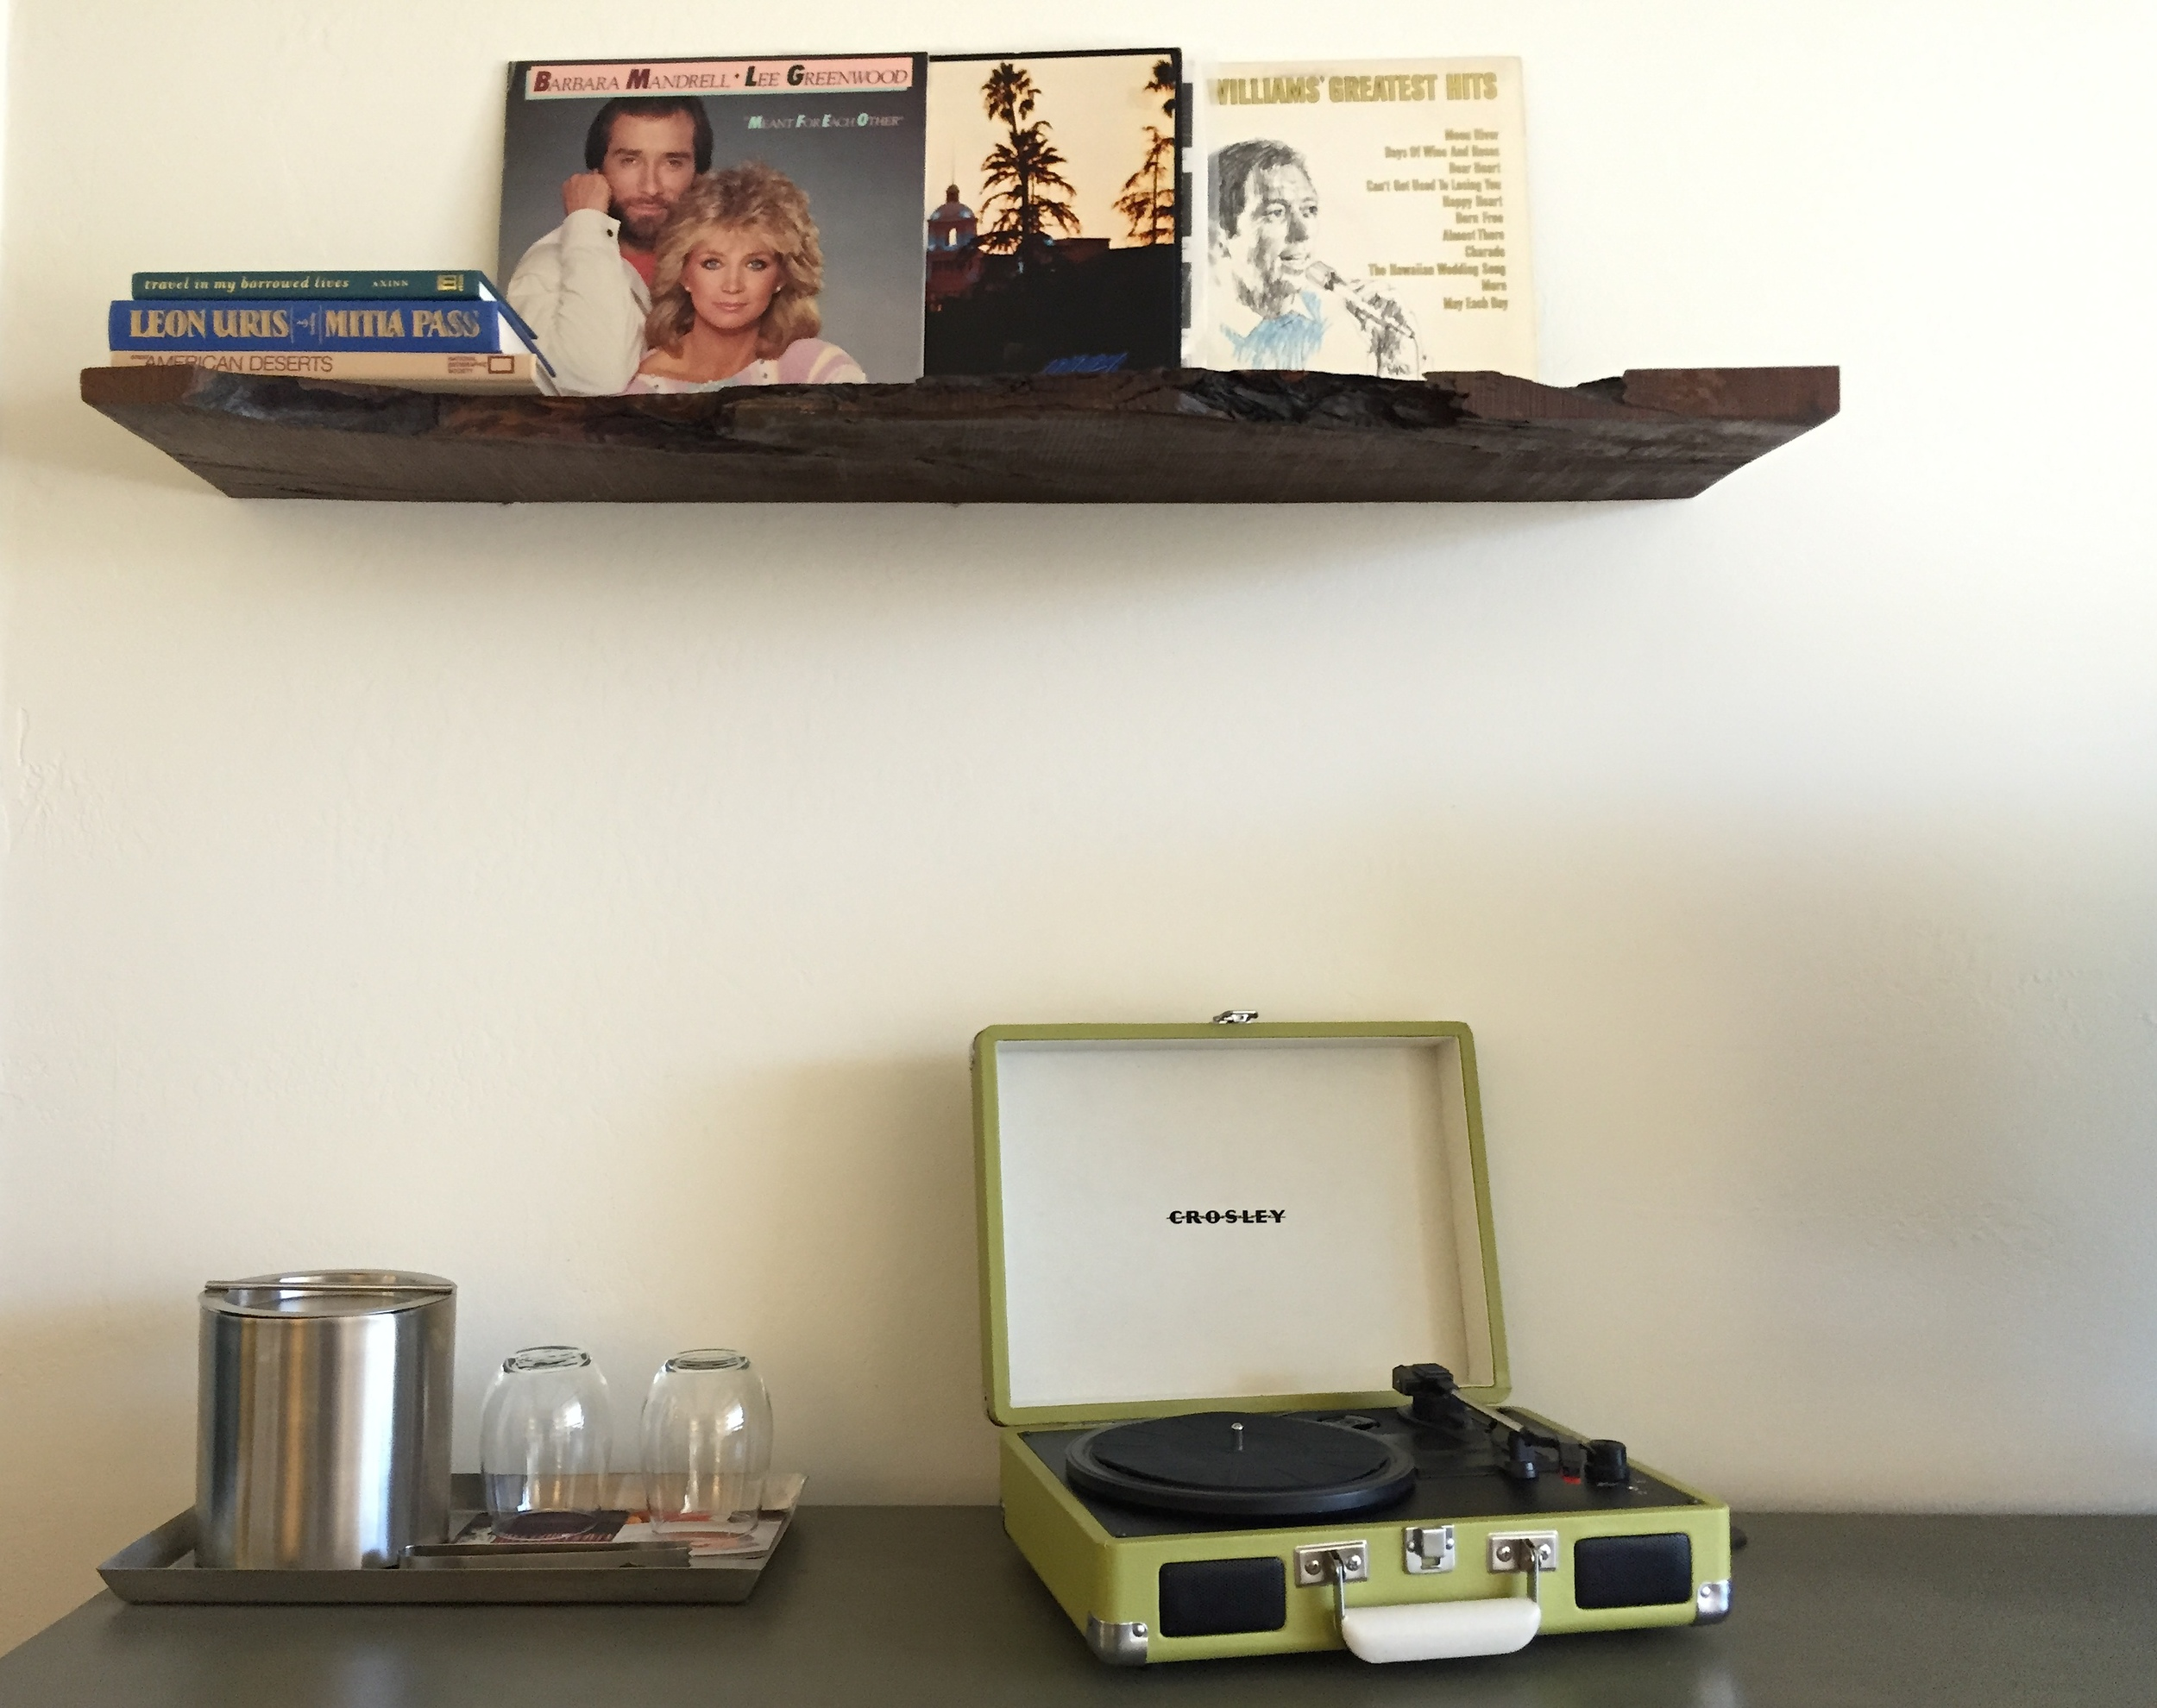 Crosley record players in every room. Want more vinyl? Ask the record concierge to curate a new mix.